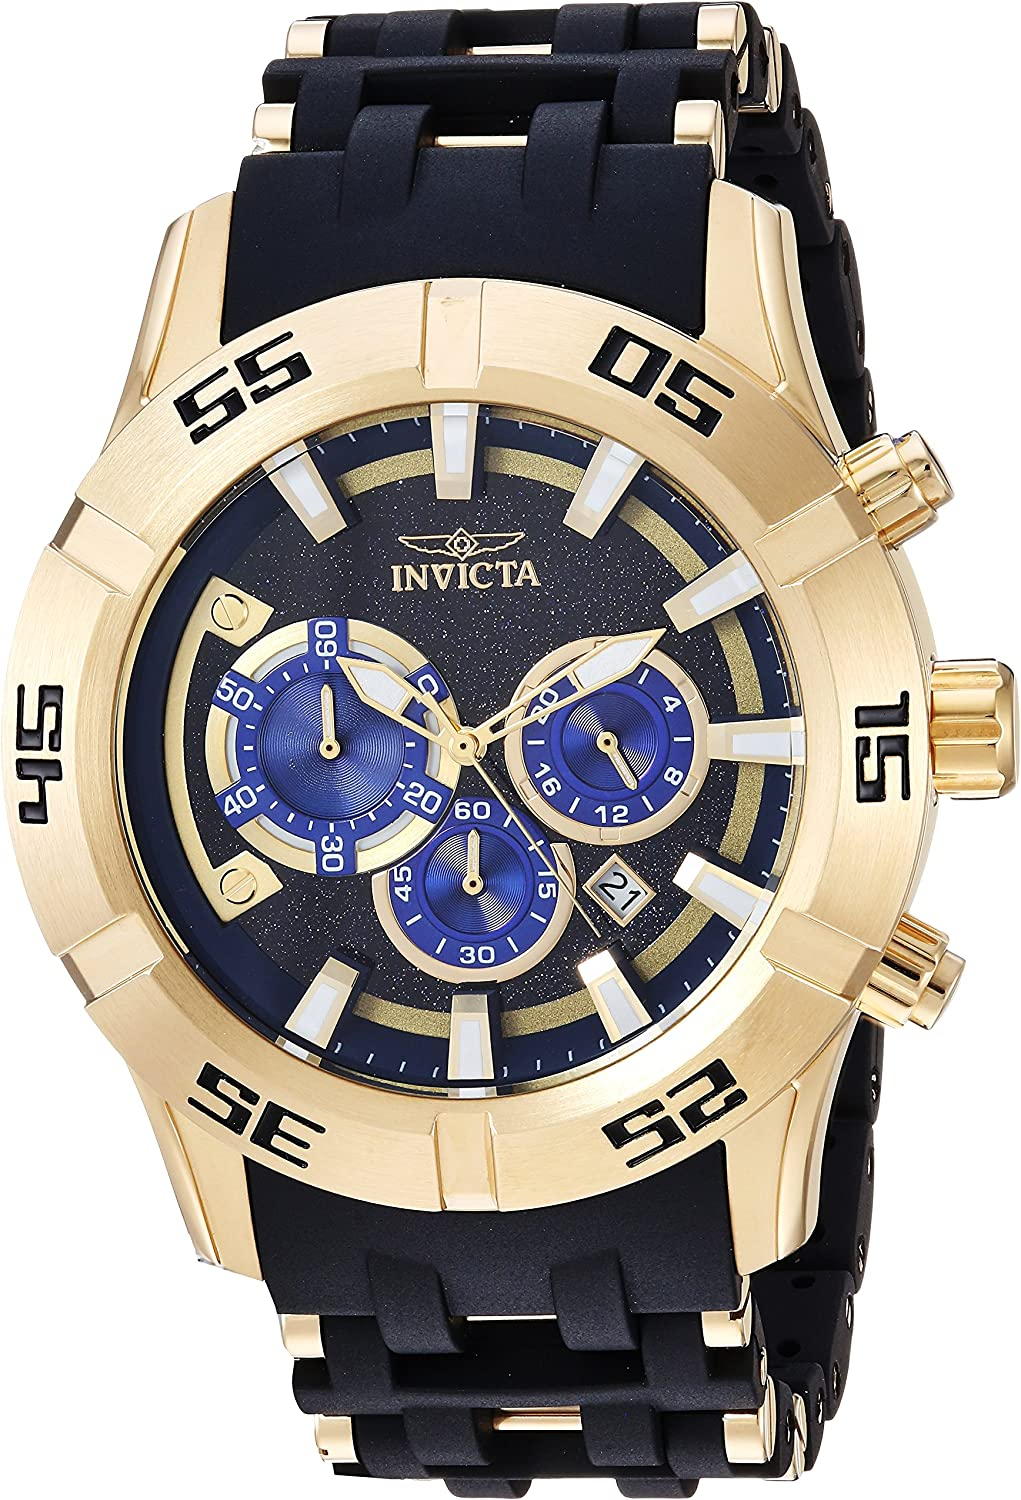 Invicta Men s 50mm Sea Spider Collection Chronograph Black Polyurethane Bracelet Stainless Steel Watch